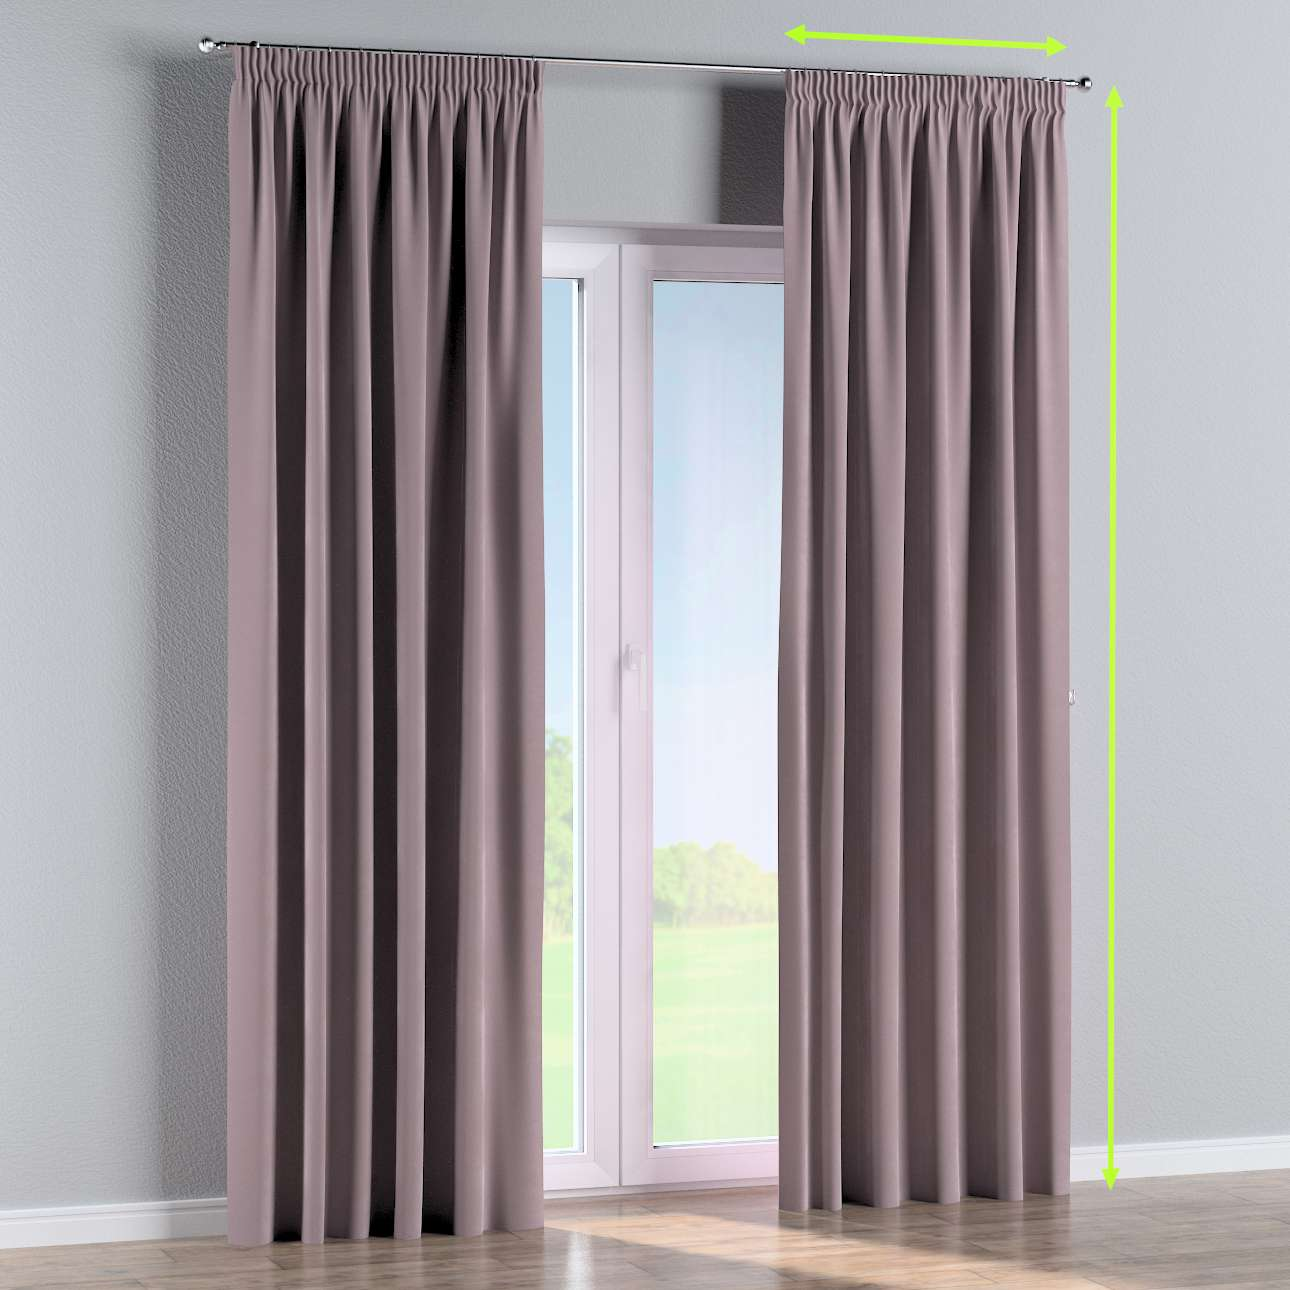 Pencil pleat lined curtains in collection Velvet, fabric: 704-14